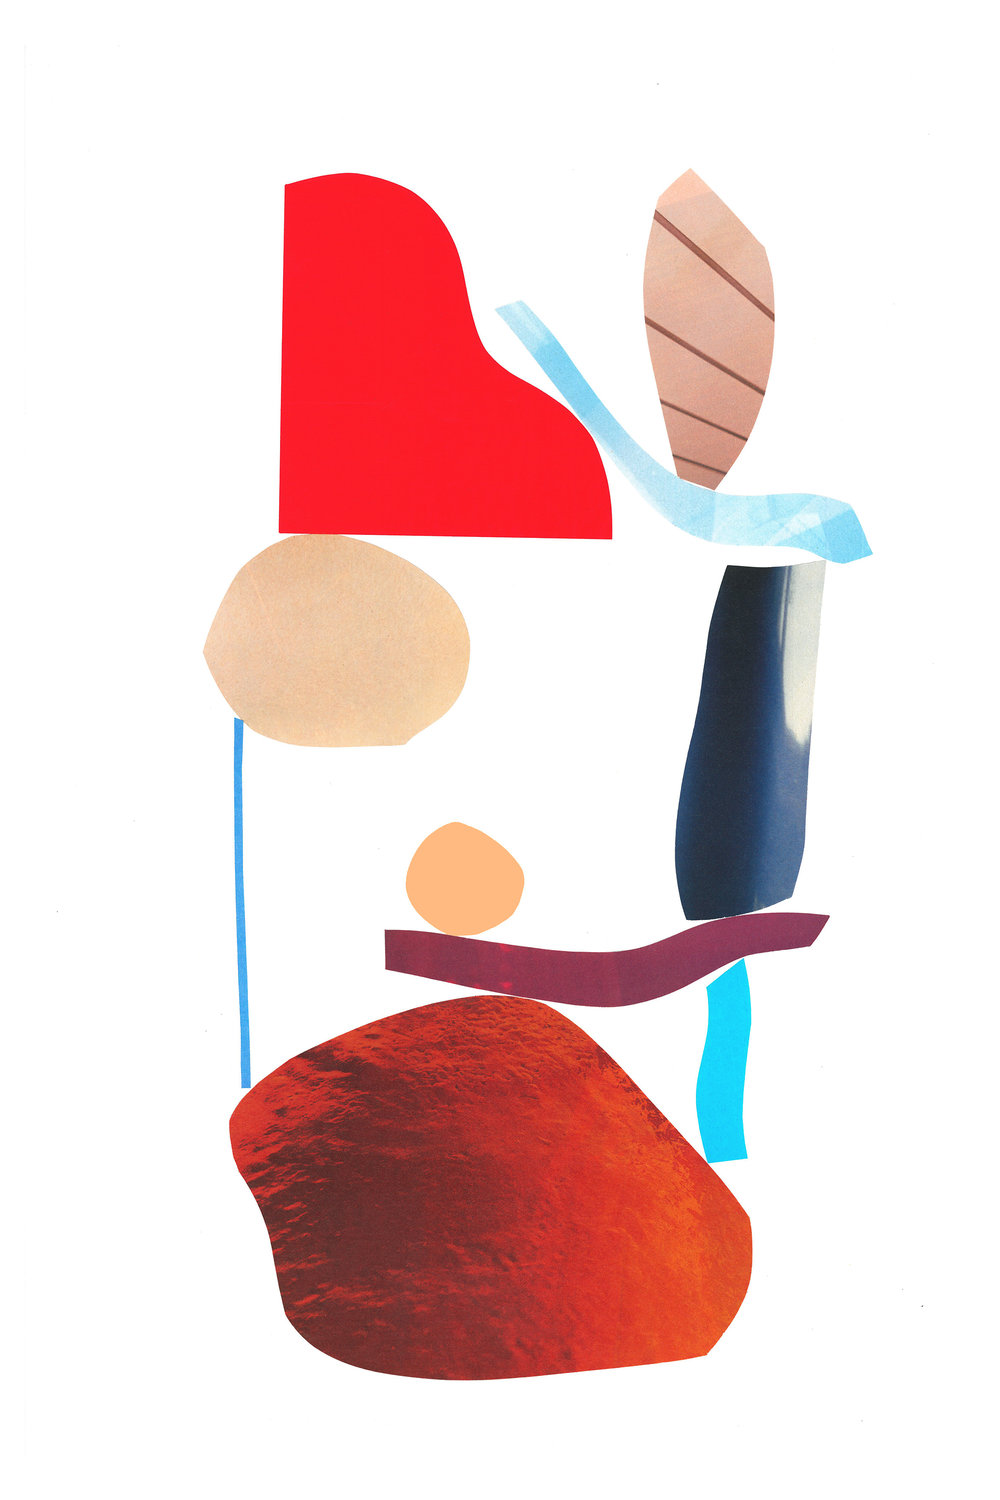 Untitled Collage 1, Mixed media on paper, 2015